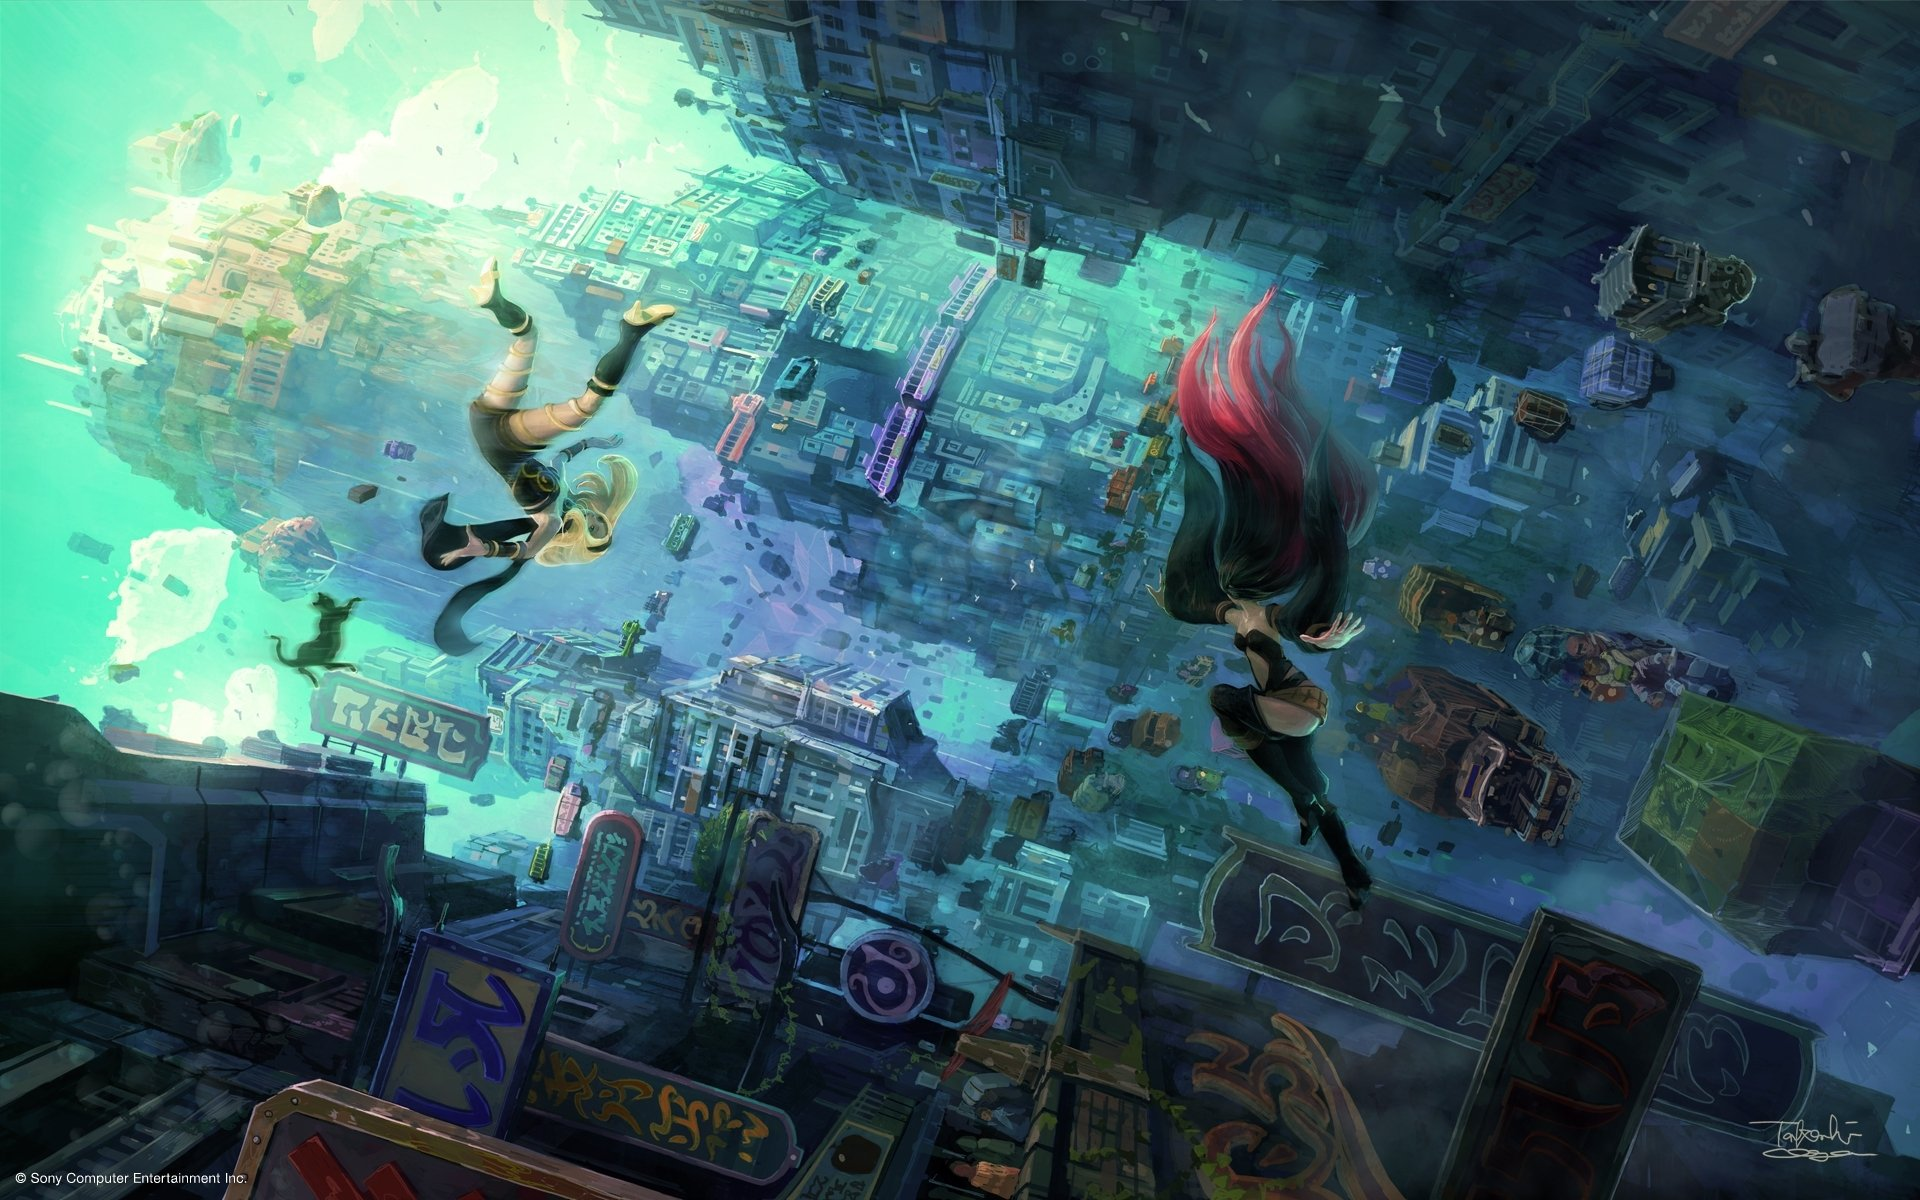 Gravity Falls Wallpaper 1366x768 Gravity Rush 2 Full Hd Wallpaper And Background Image